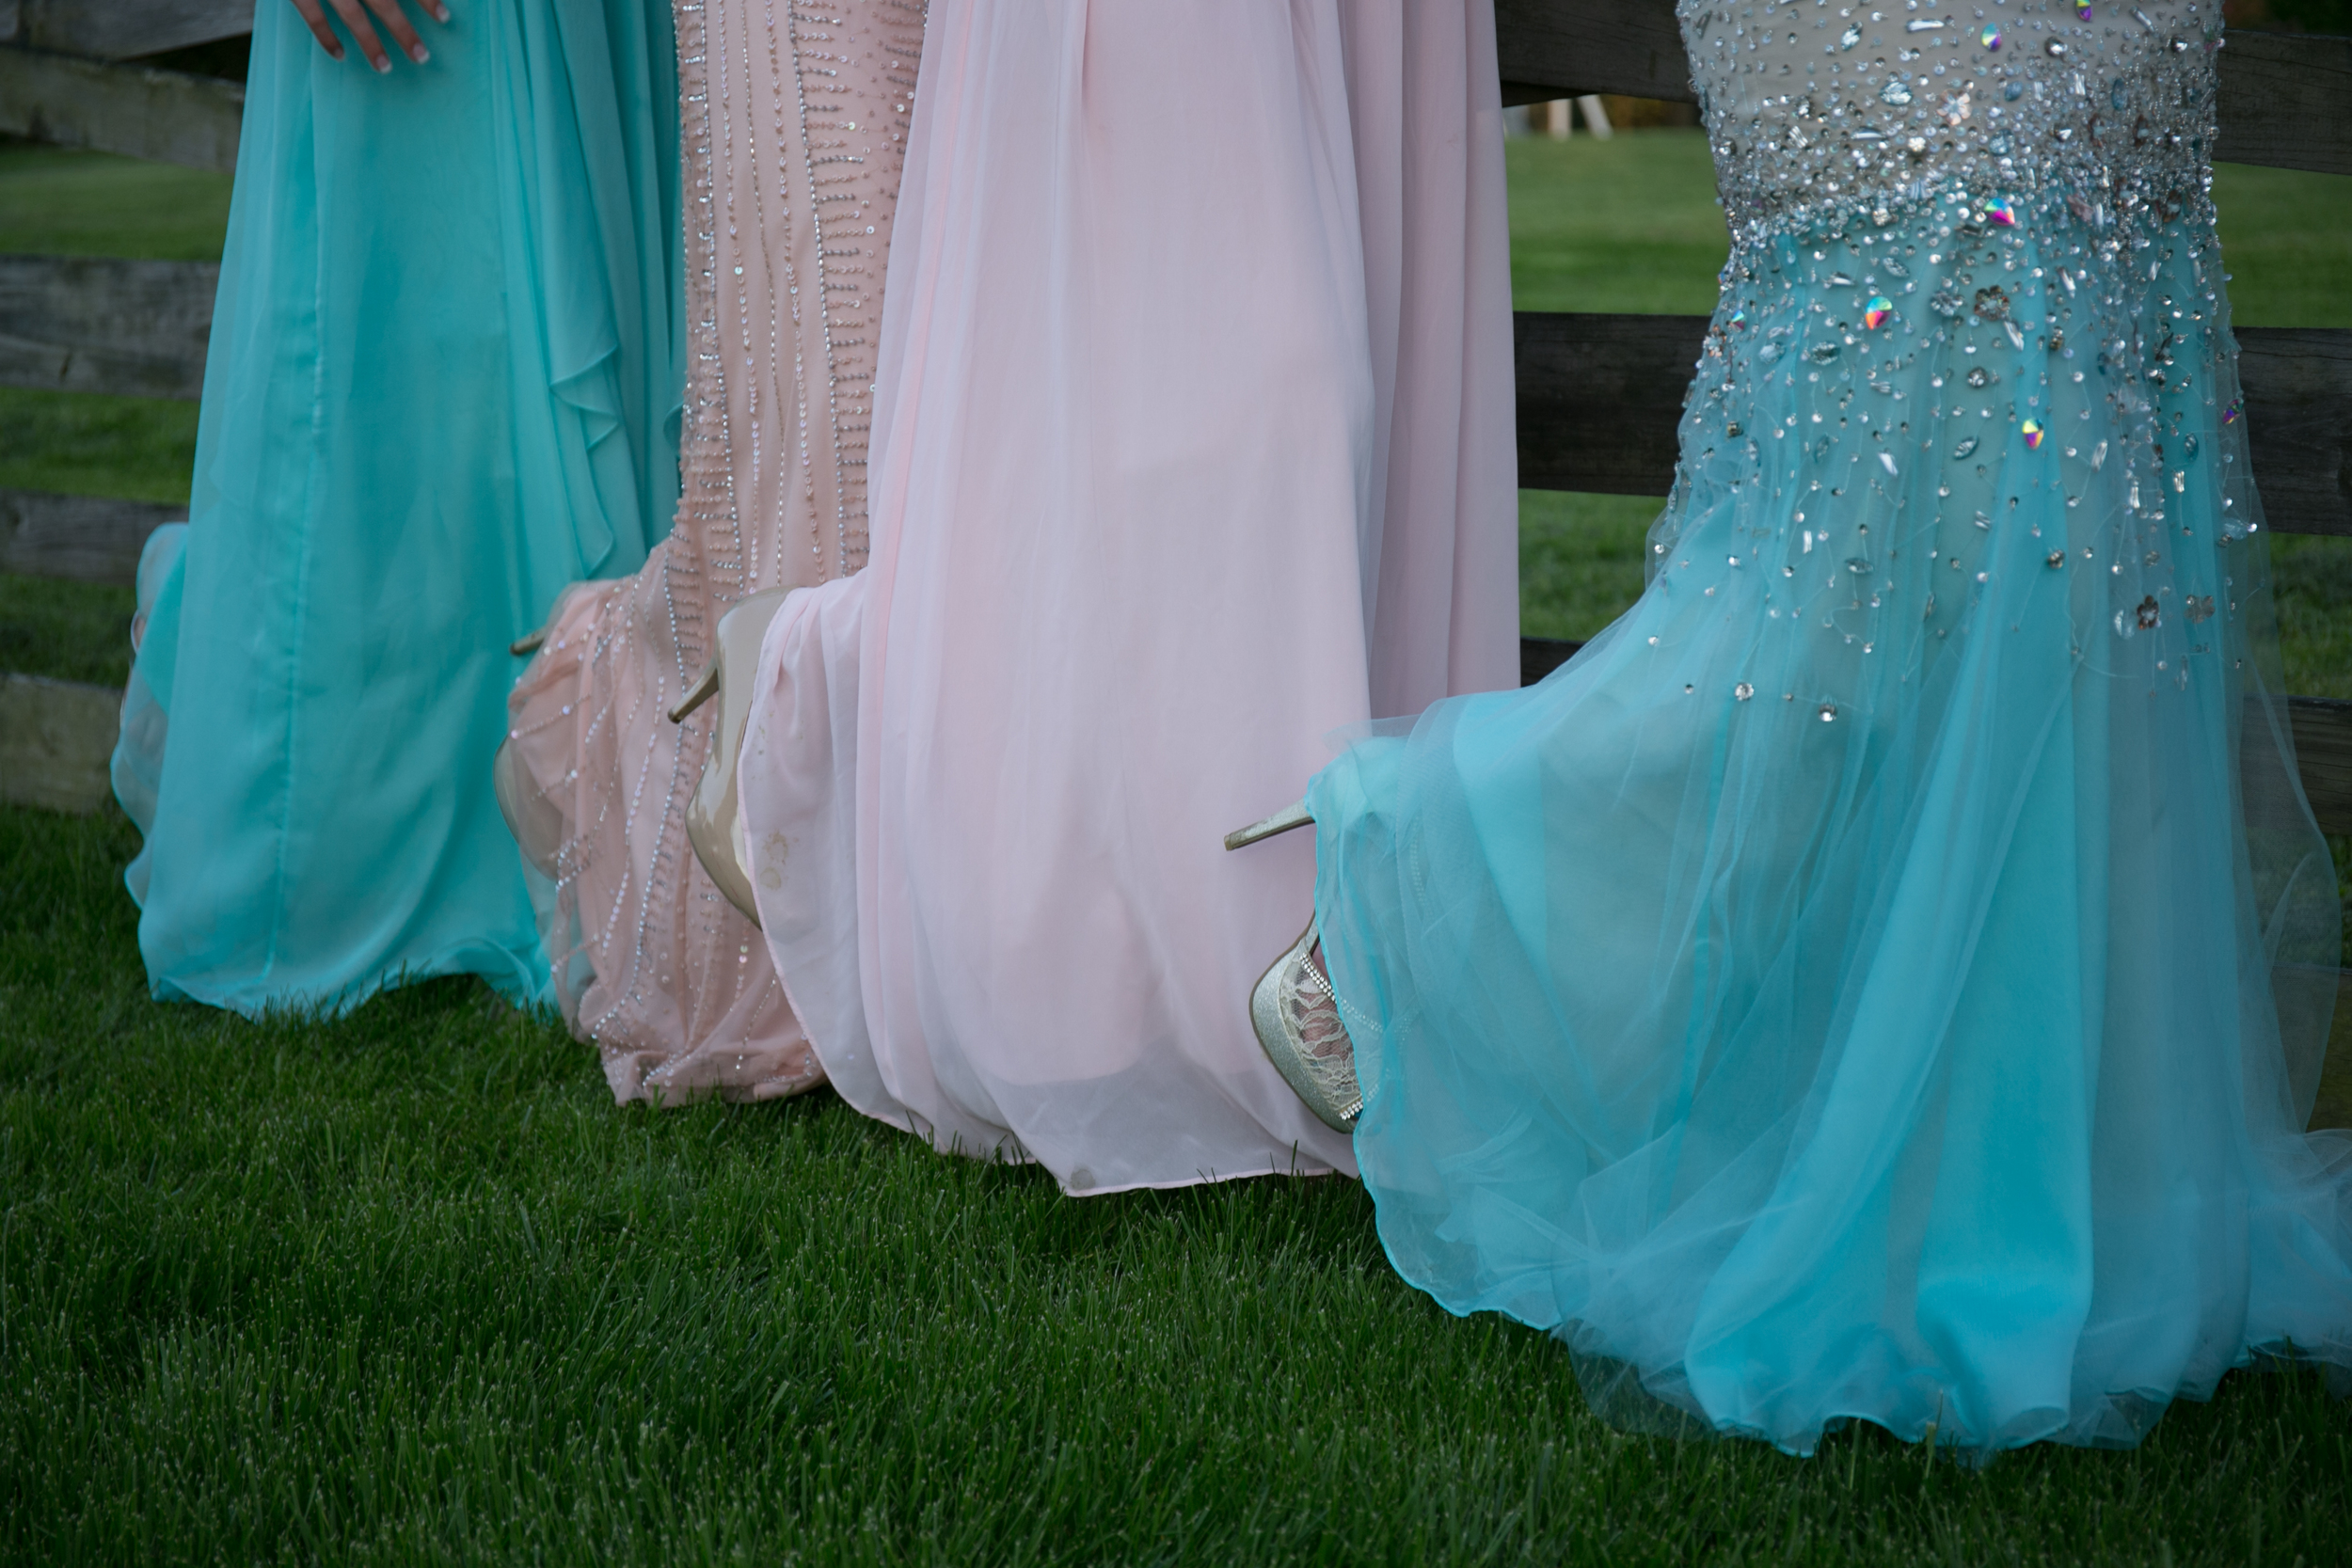 Mount-De-Sales-Pre-Prom-May-2014-121.jpg